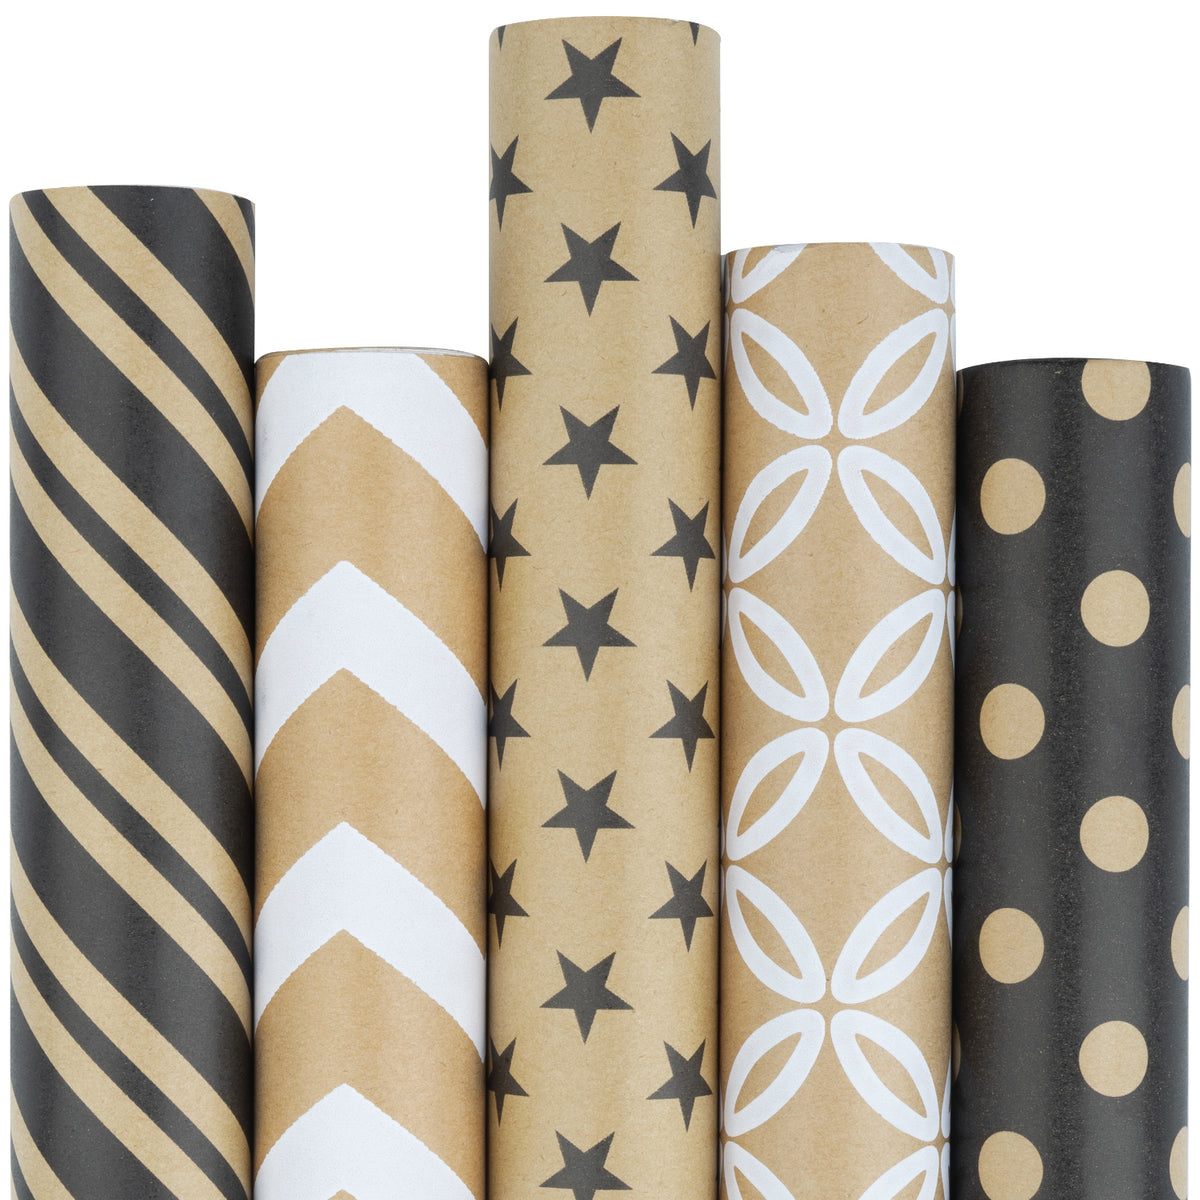 Wrapaholic-Kraft- Gift- Wrapping -Paper-Roll -Black -and-White- Geometry-1